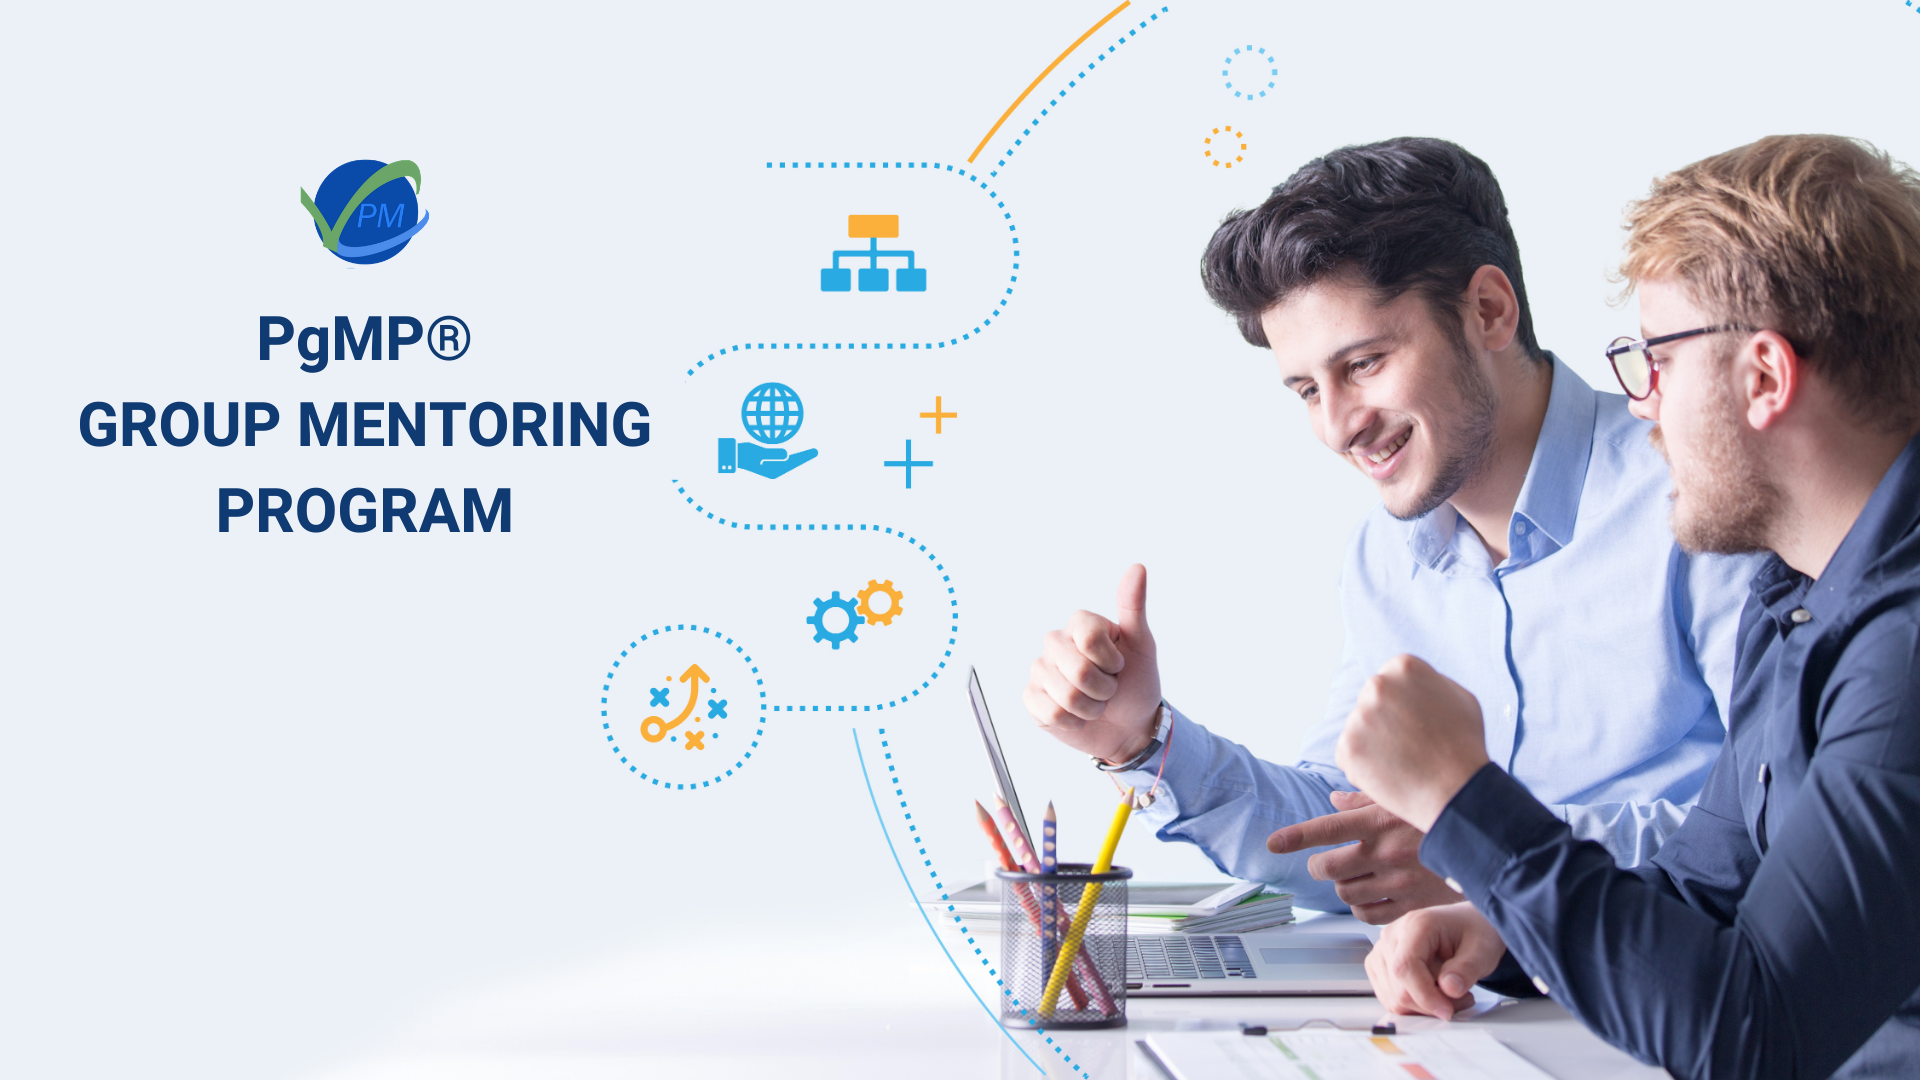 PgMP® Group Mentoring Program, February 06, 2021, 6 - 8 PM (USA PST) / 8 - 10 PM (USA CDT) / February 07, 2021, 10 AM - 12 PM (SGT / MYT) / 1 - 3 PM (AEST)